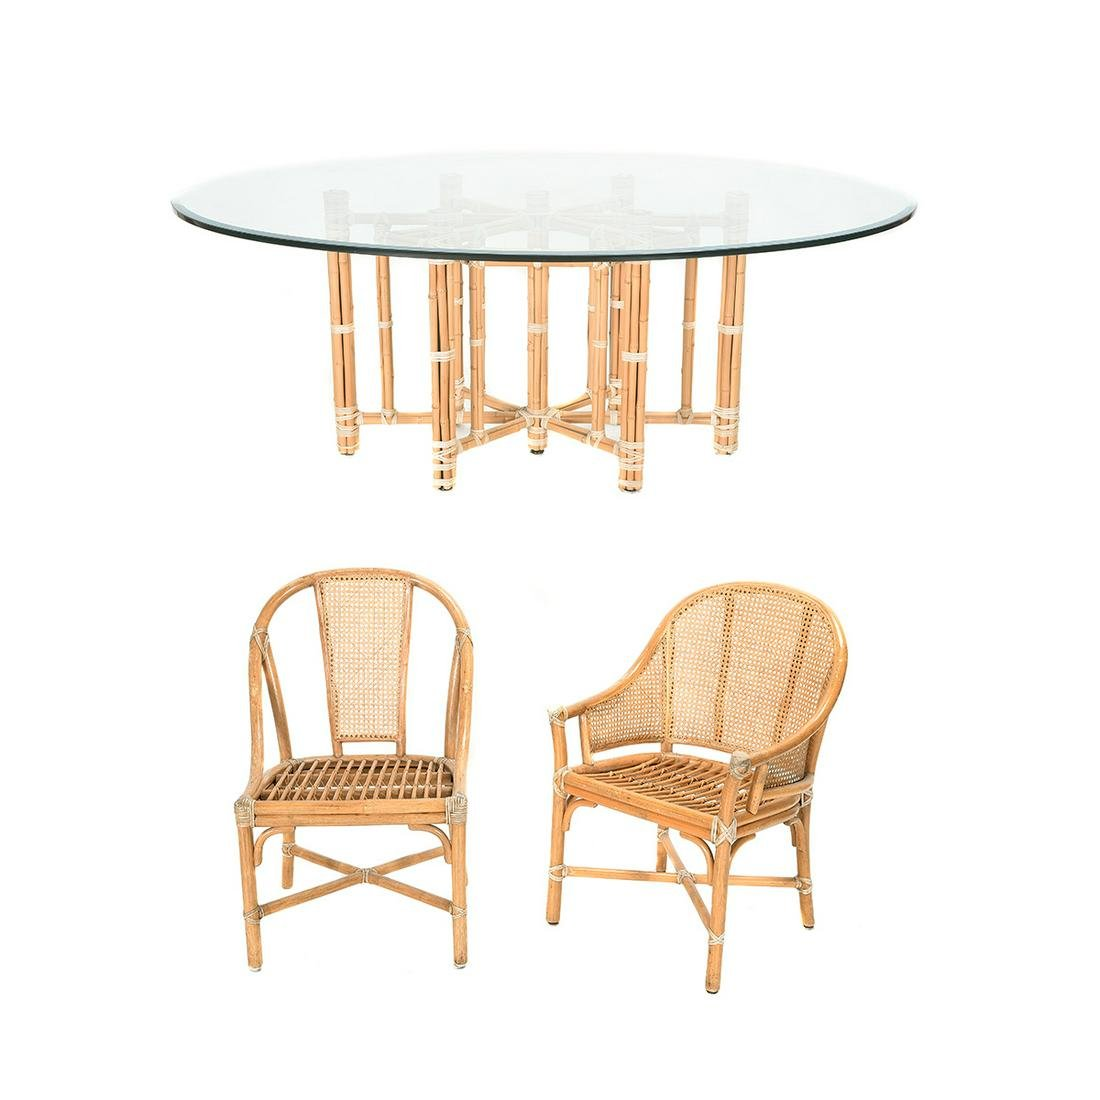 McGuire Glass Top Dining Table with Six Chairs.